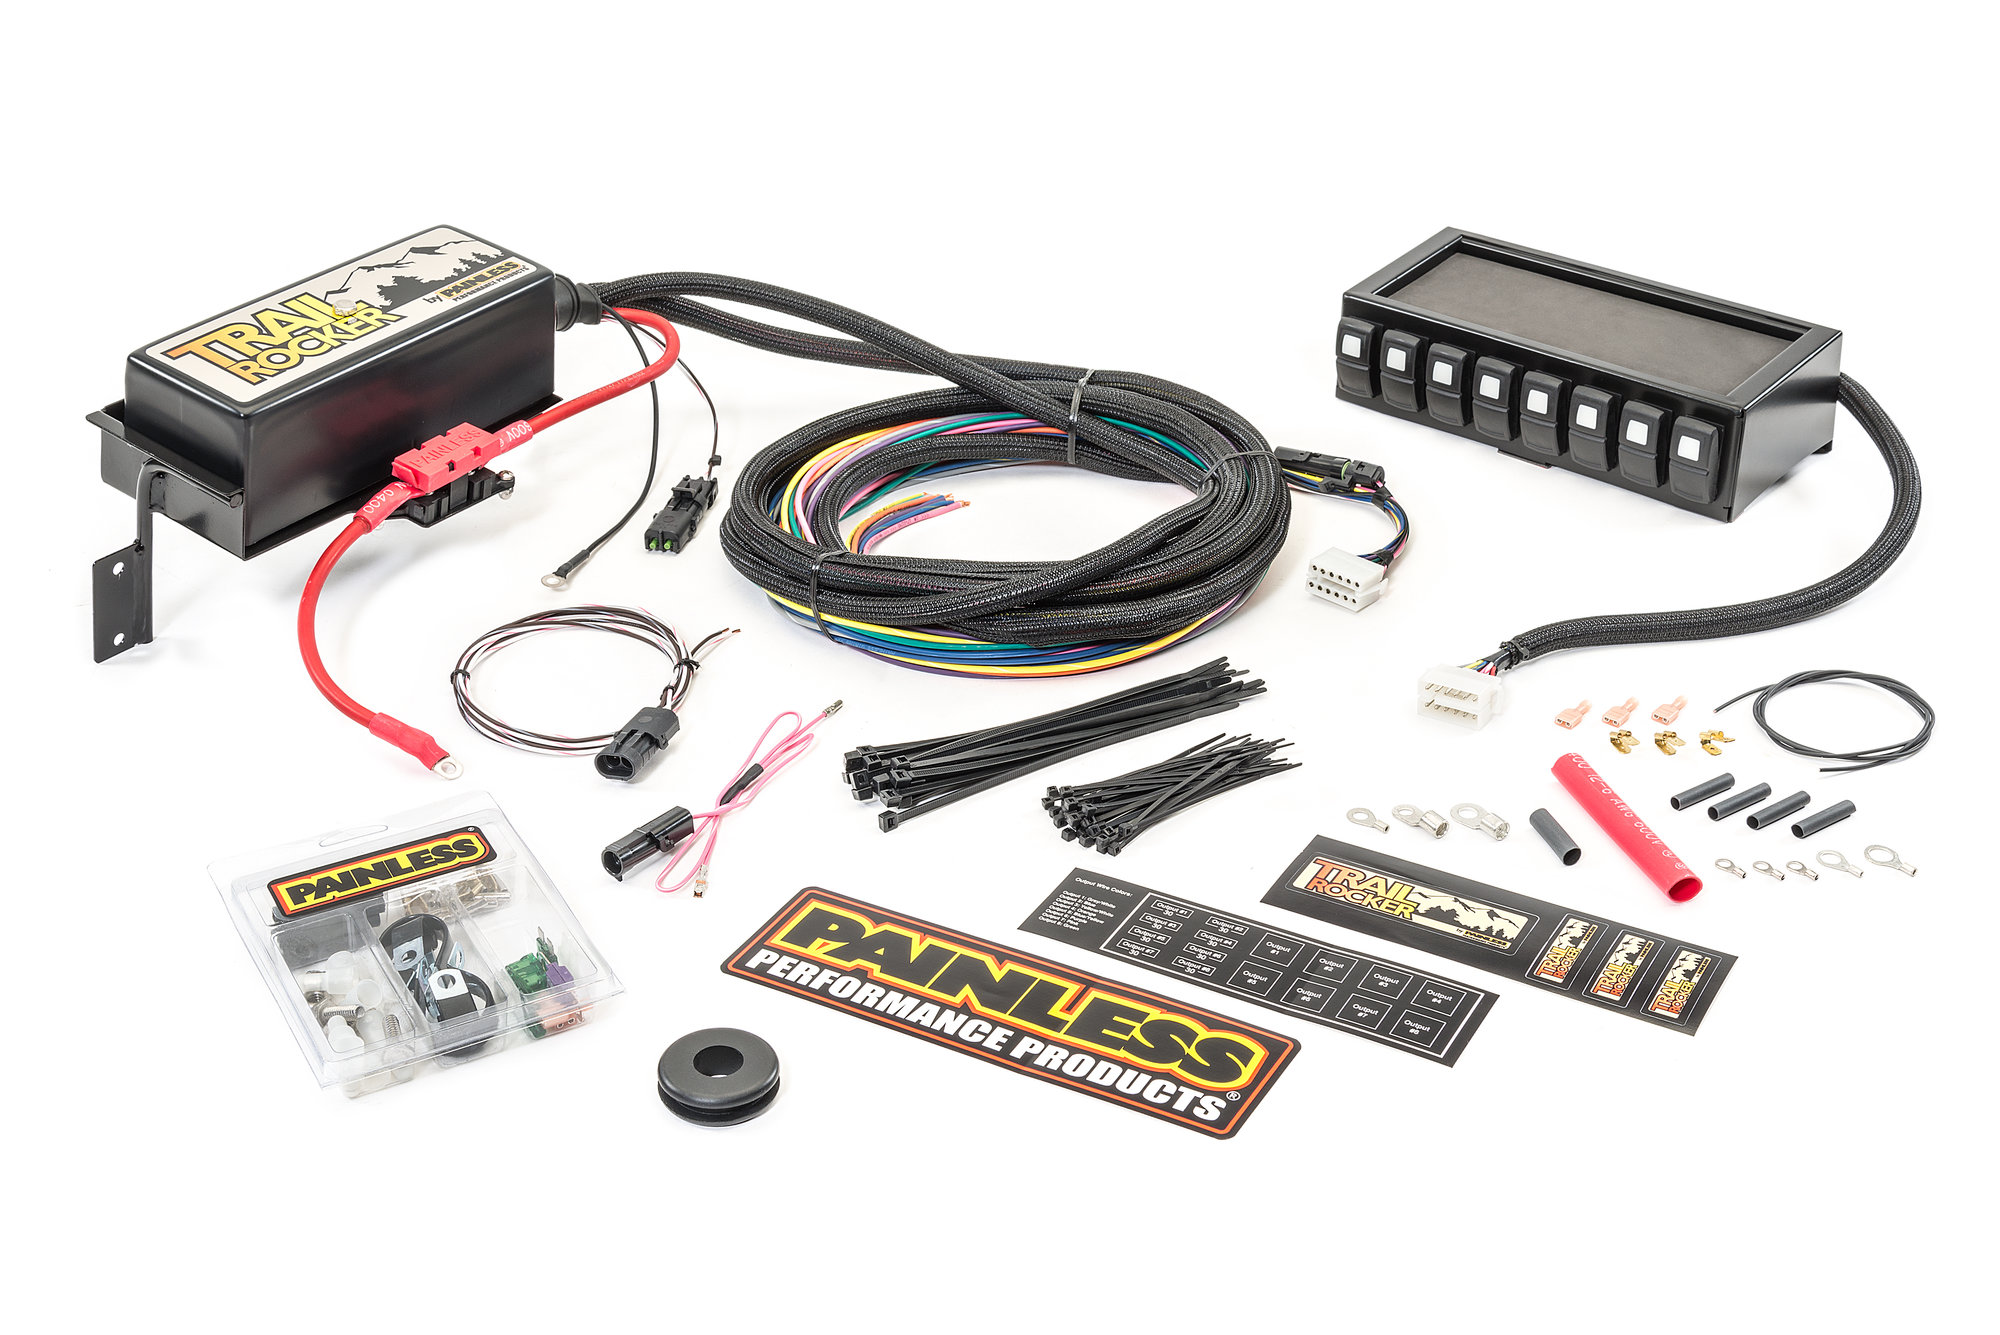 hight resolution of painless wiring harness jeep cherokee wiring diagram todaypainless wiring 57040 trail rocker system with dash mounted